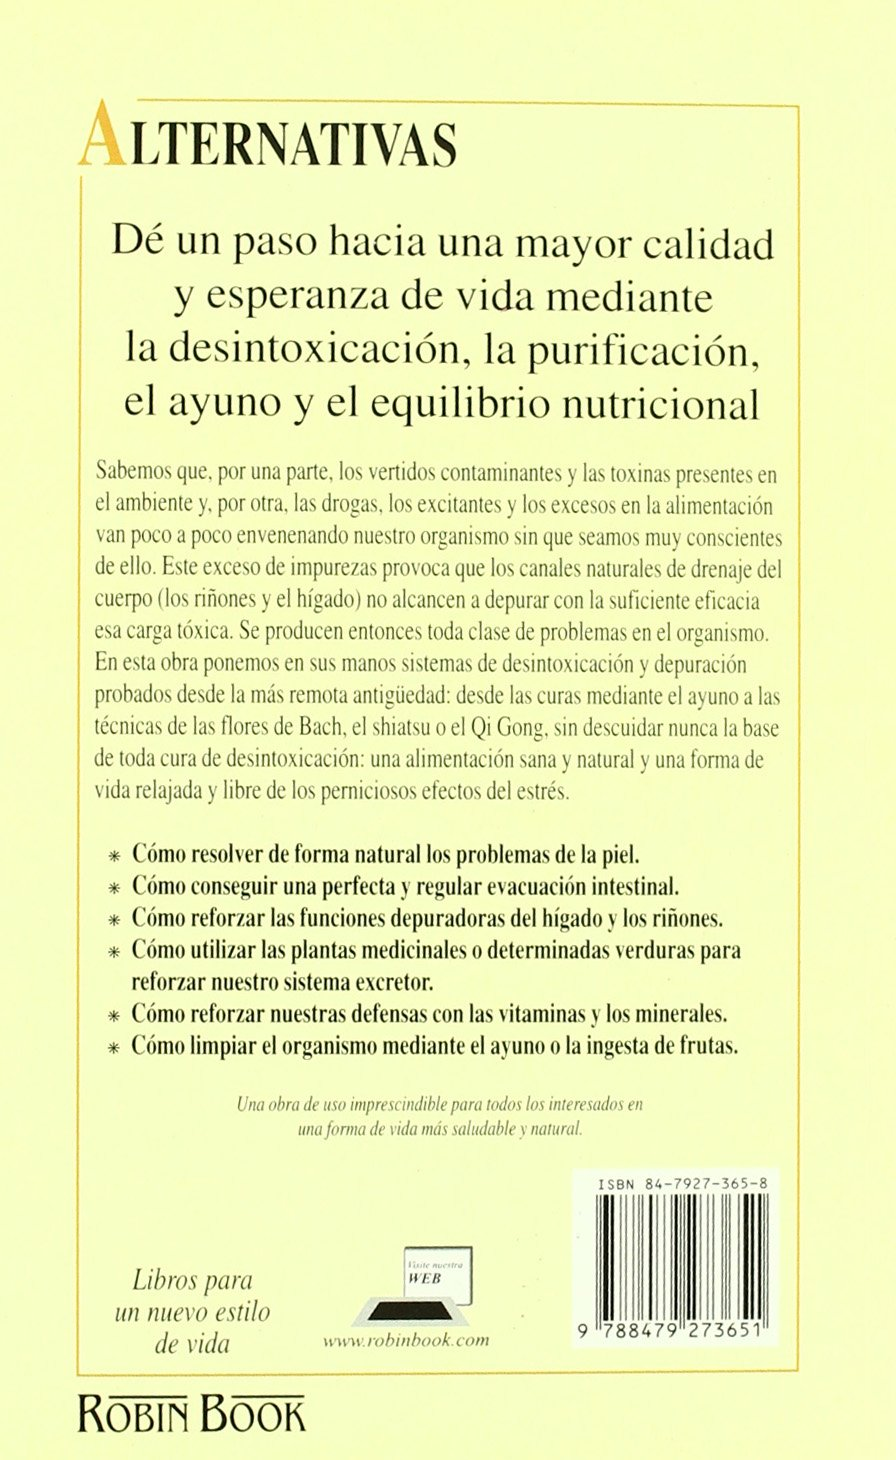 El Libro De La Desintoxicacion Y La Salud / The Detoxification and Health Guide (Alternativas -salud Natural) (Spanish Edition): Ruediger Dahlke: ...